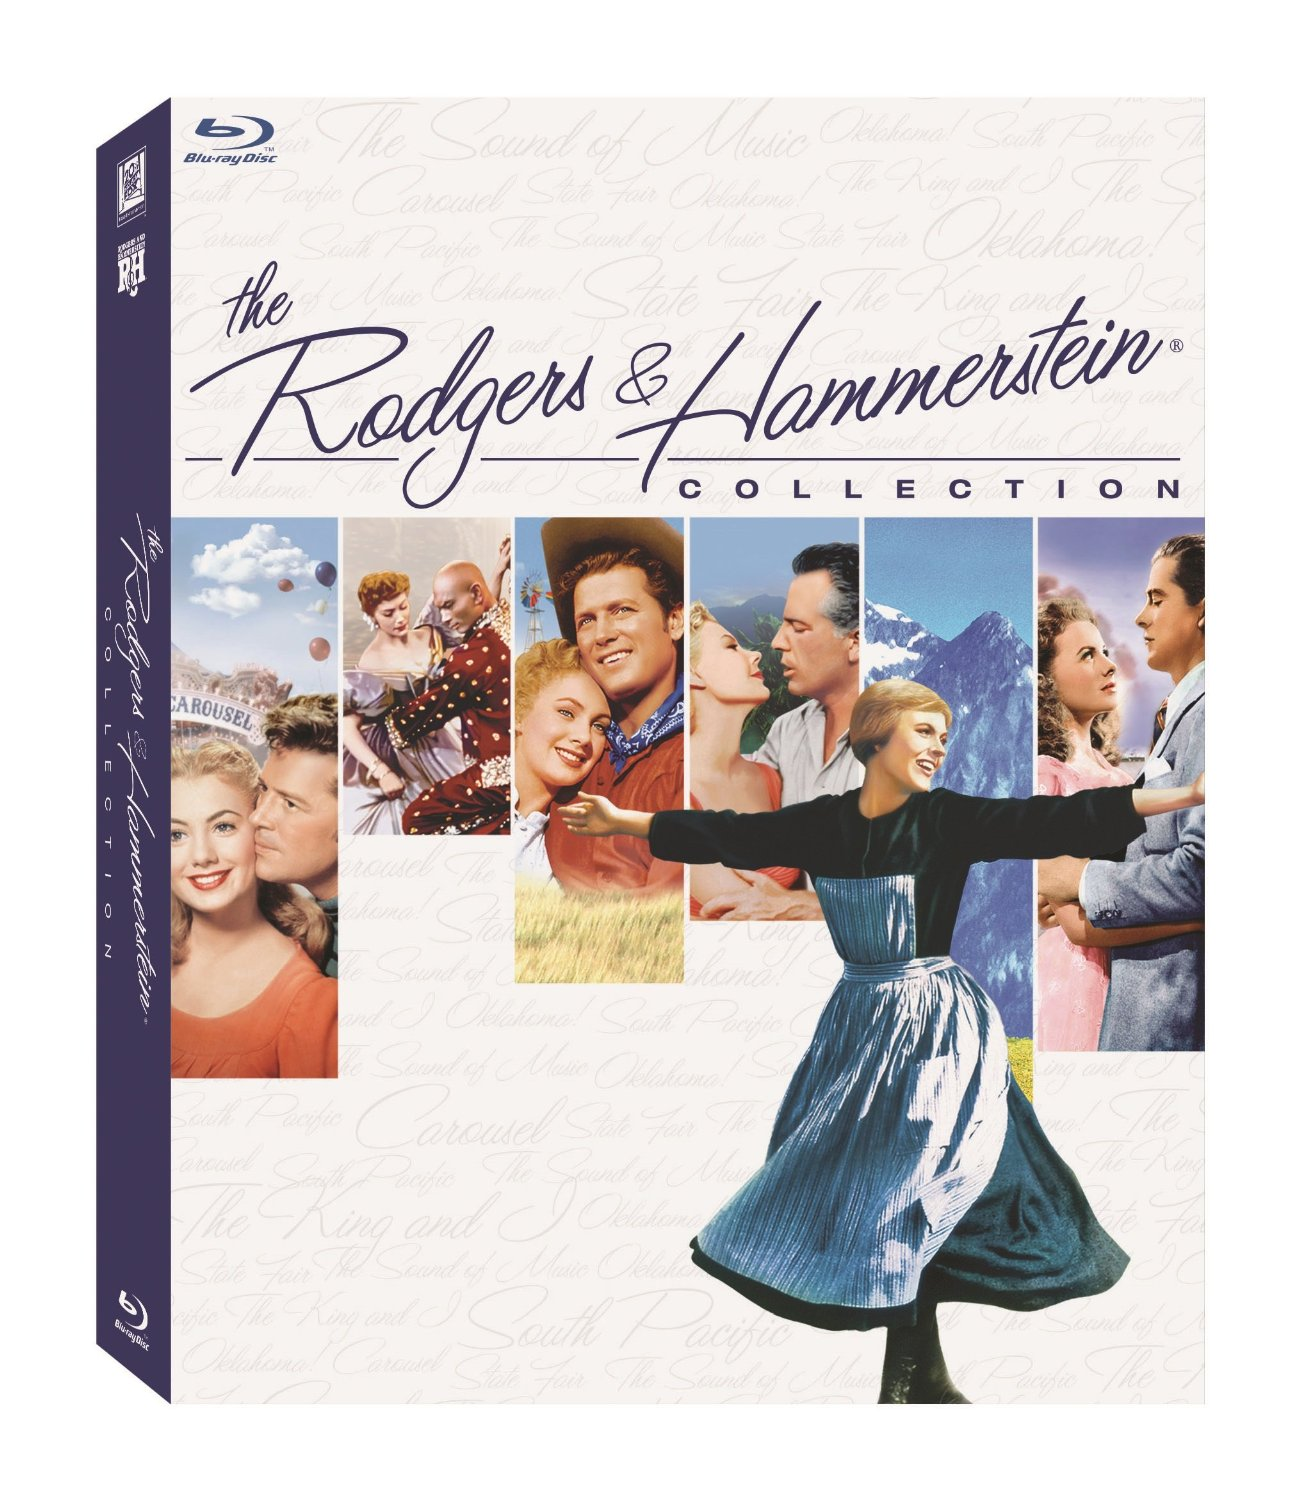 Rodgers_Hammerstein_Collection.jpg